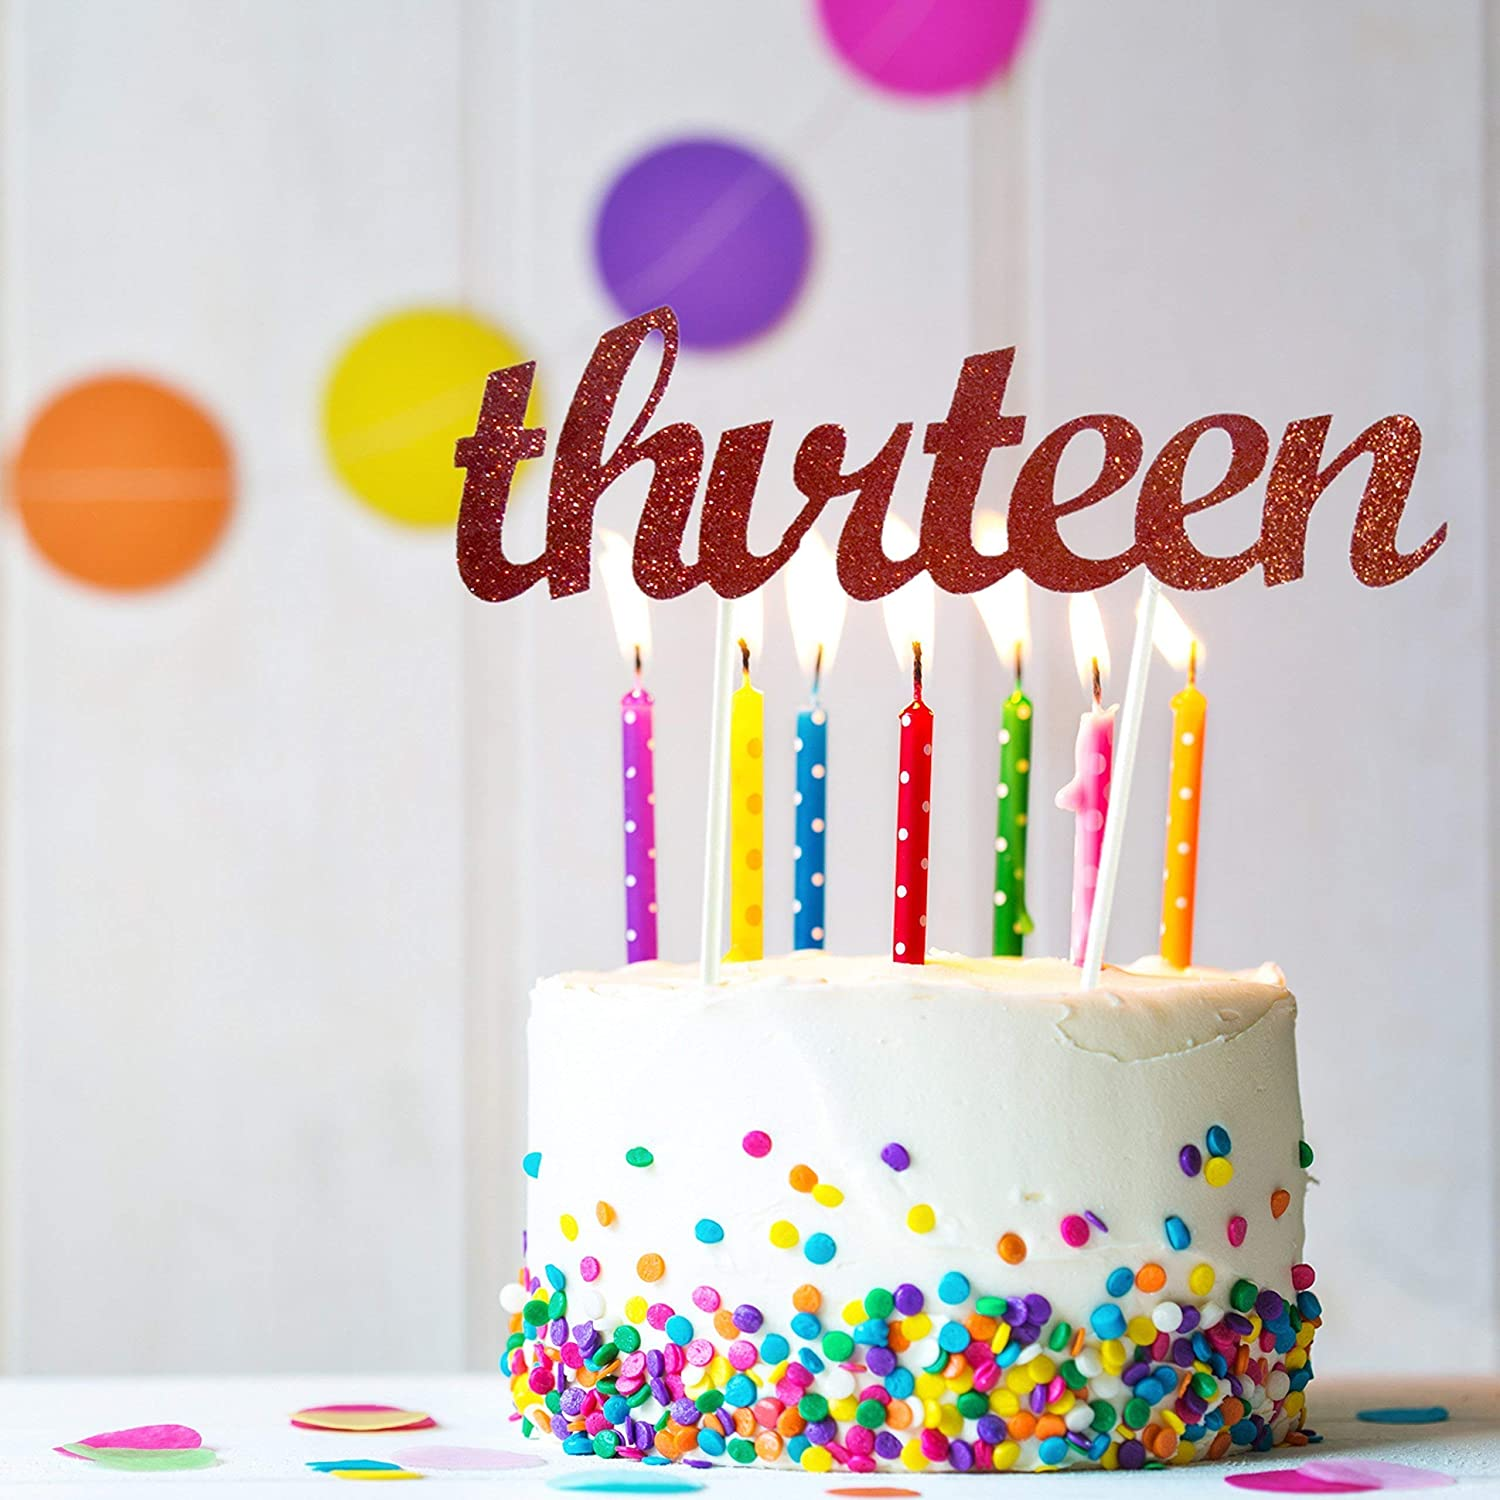 13th Birthday Cake Topper Thirteen Birthday Party Supplies Official Teenager Birthday Decorations Official Teenager Cake Topper for Son or Daughter Turning 13 Thirteen Black Script Cake Topper